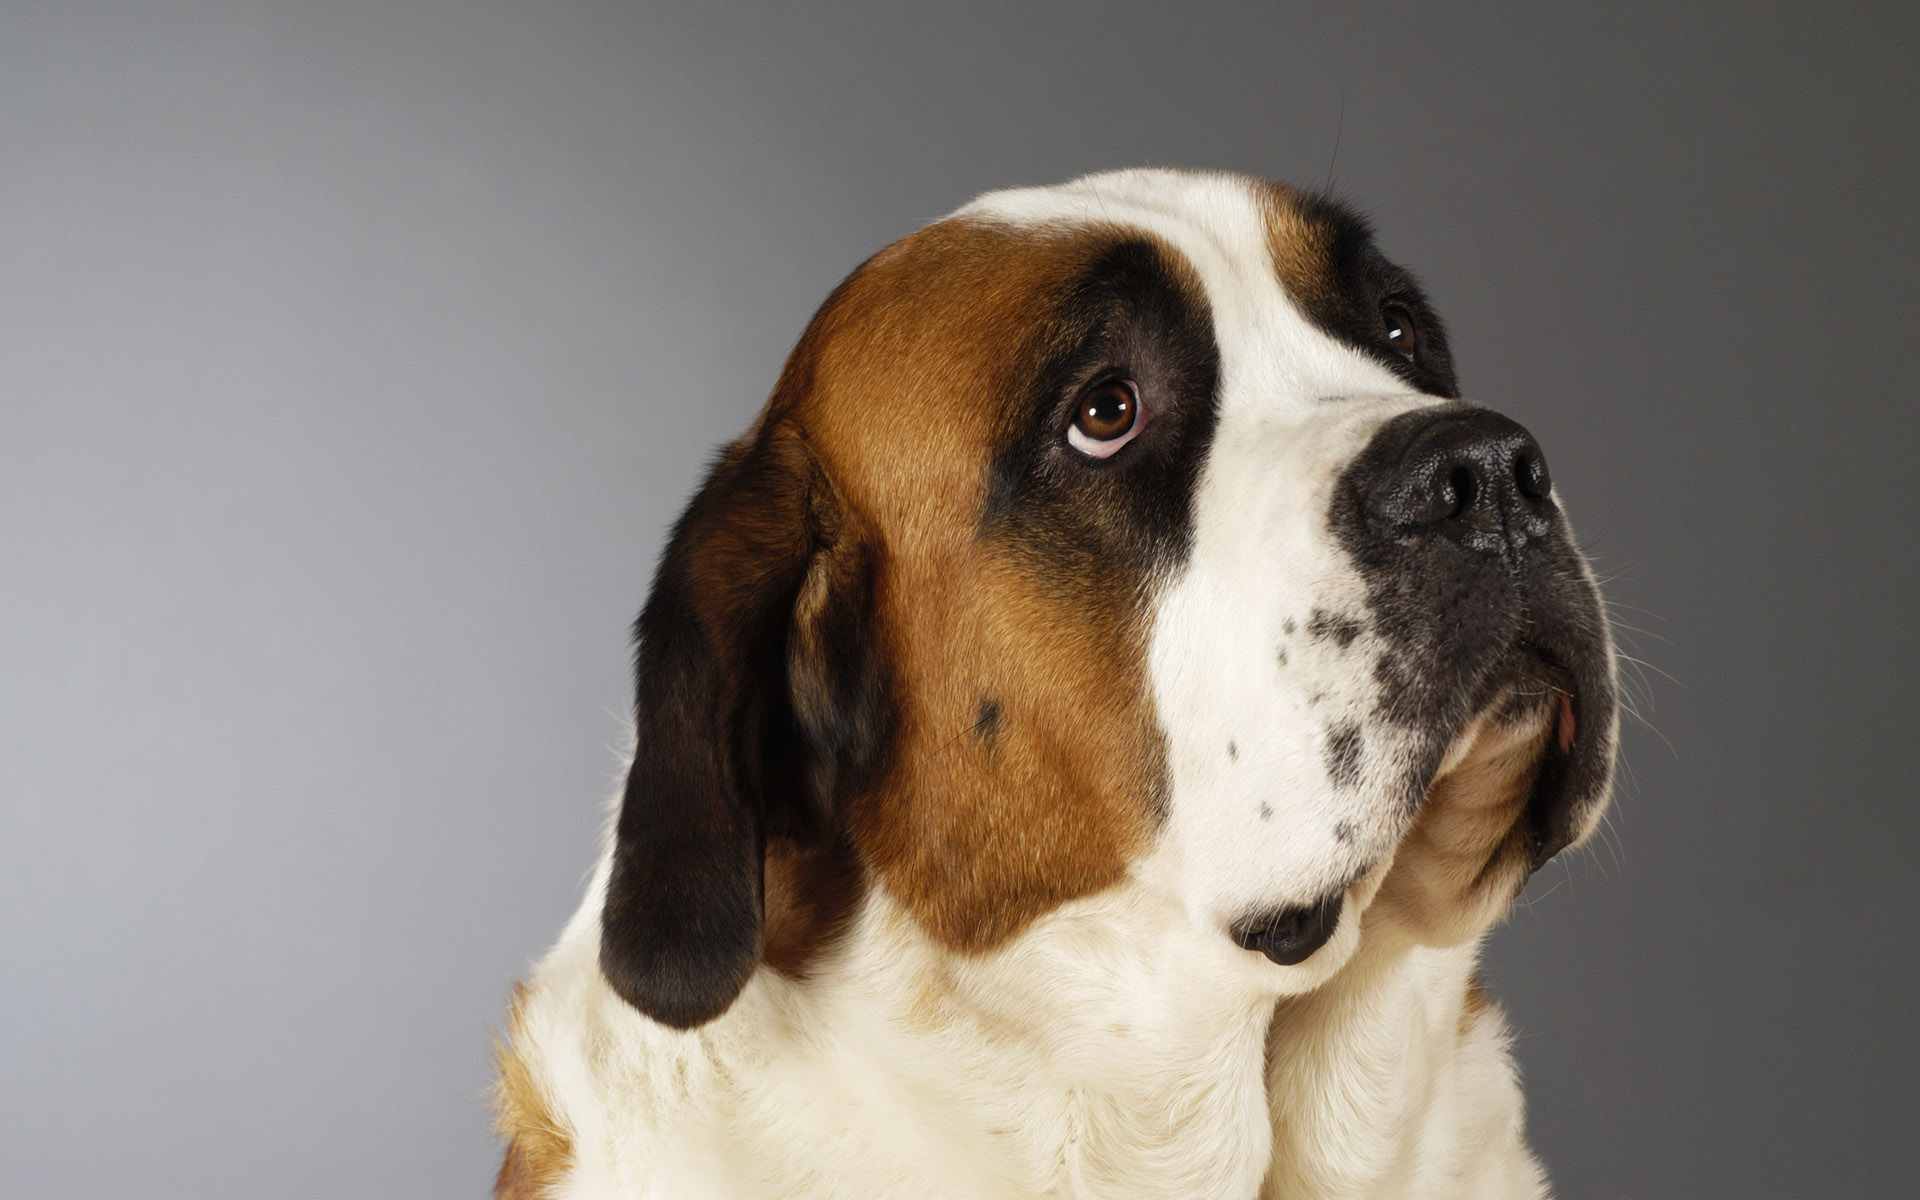 St. Bernard Full HD Wallpaper And Background Image